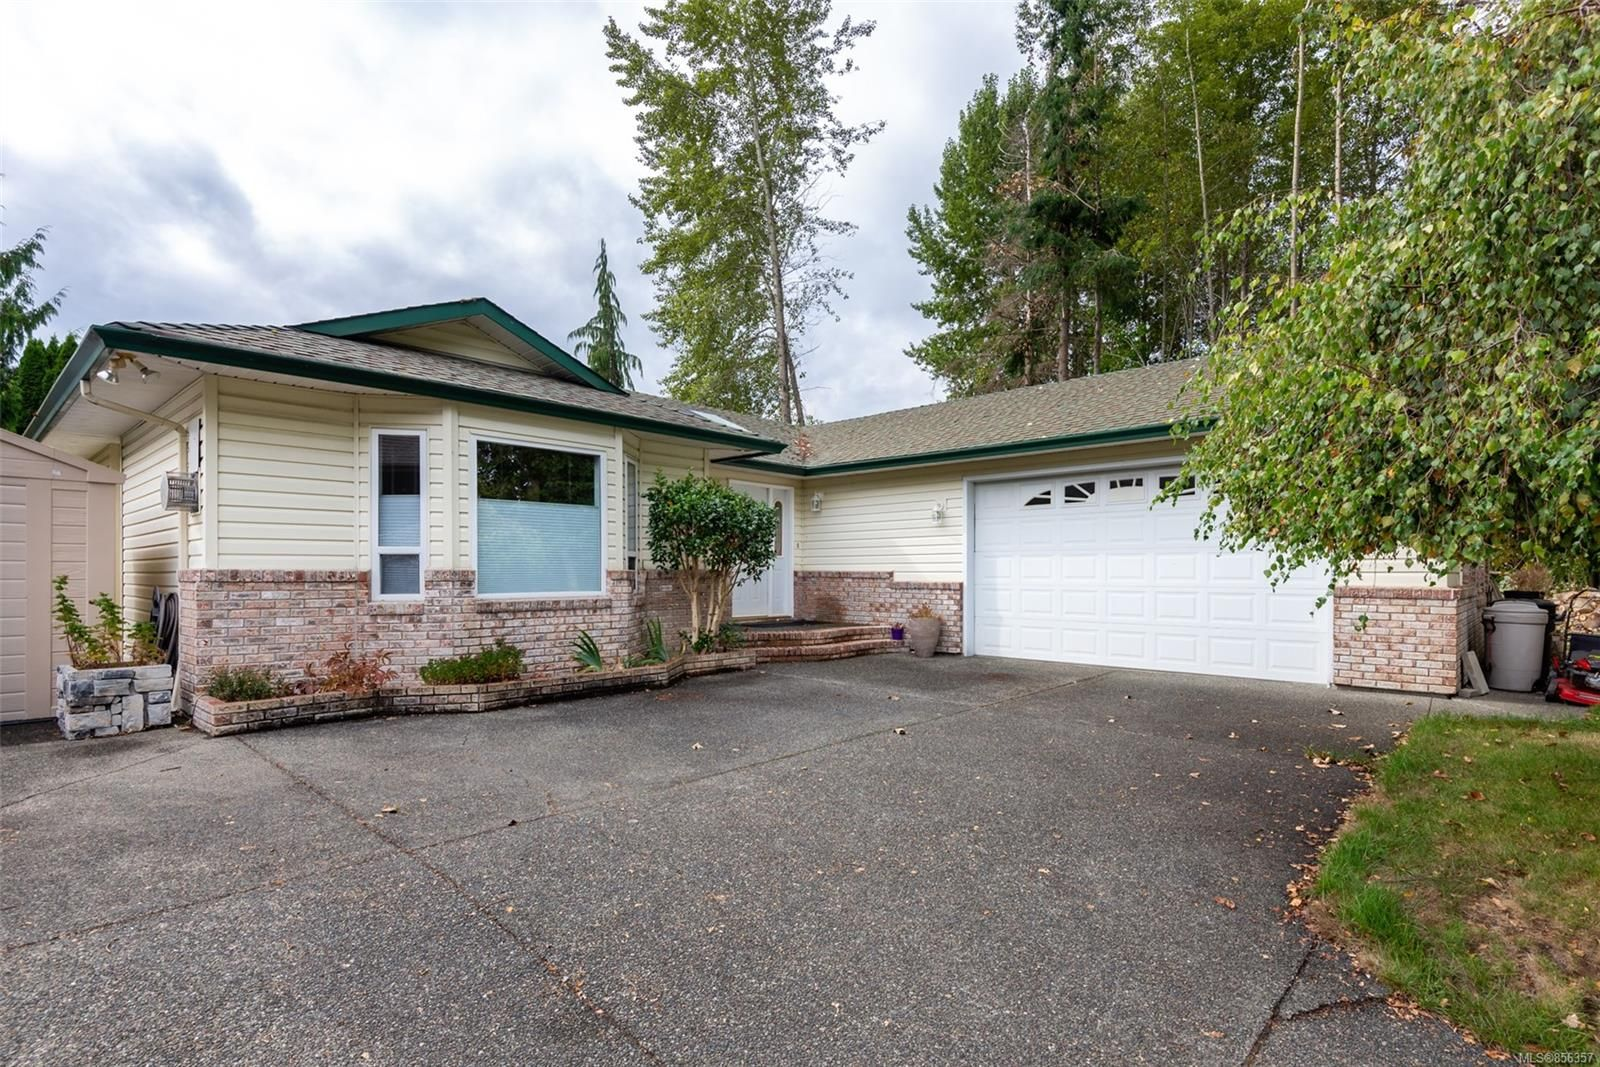 Main Photo: 691 Cooper St in : CR Willow Point House for sale (Campbell River)  : MLS®# 856357